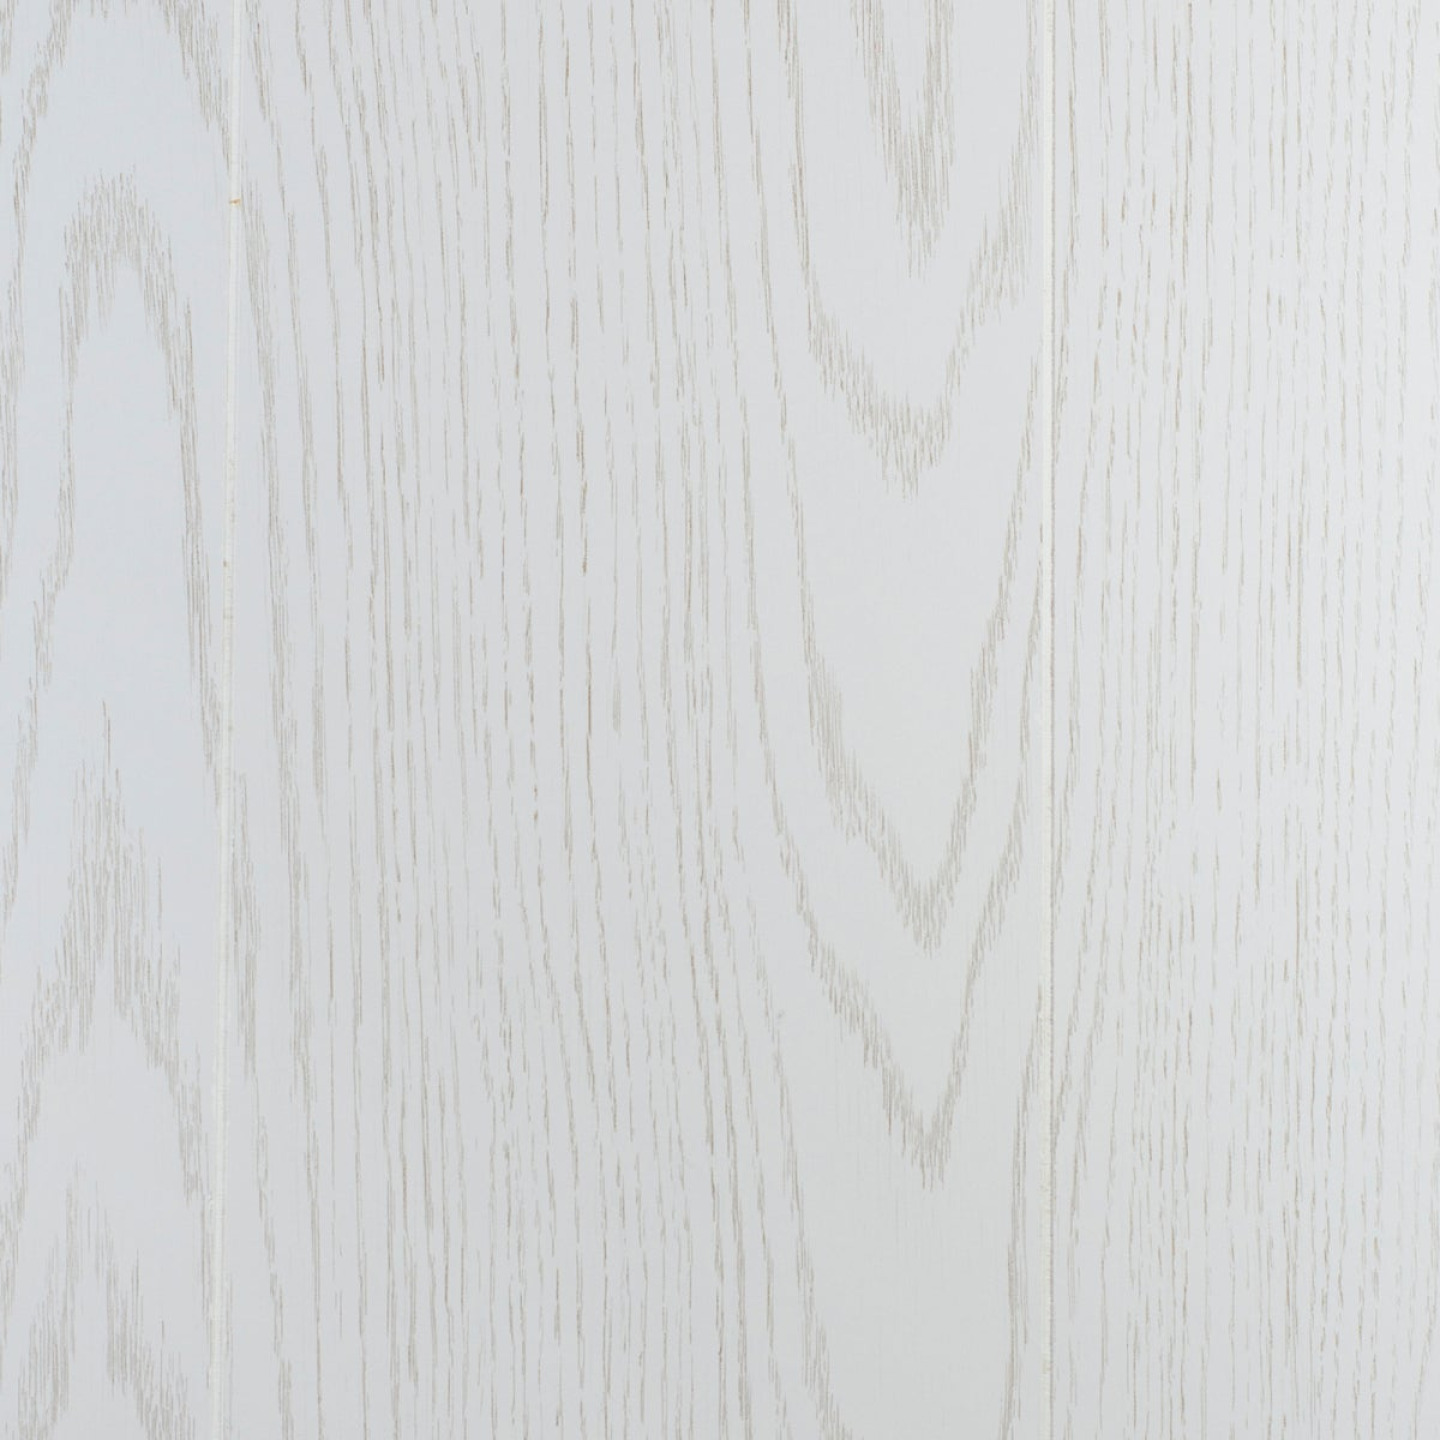 Global Product Sourcing 4 Ft. x 8 Ft. x 1/8 In. Bayshore Random Groove Profile Wall Paneling Image 1